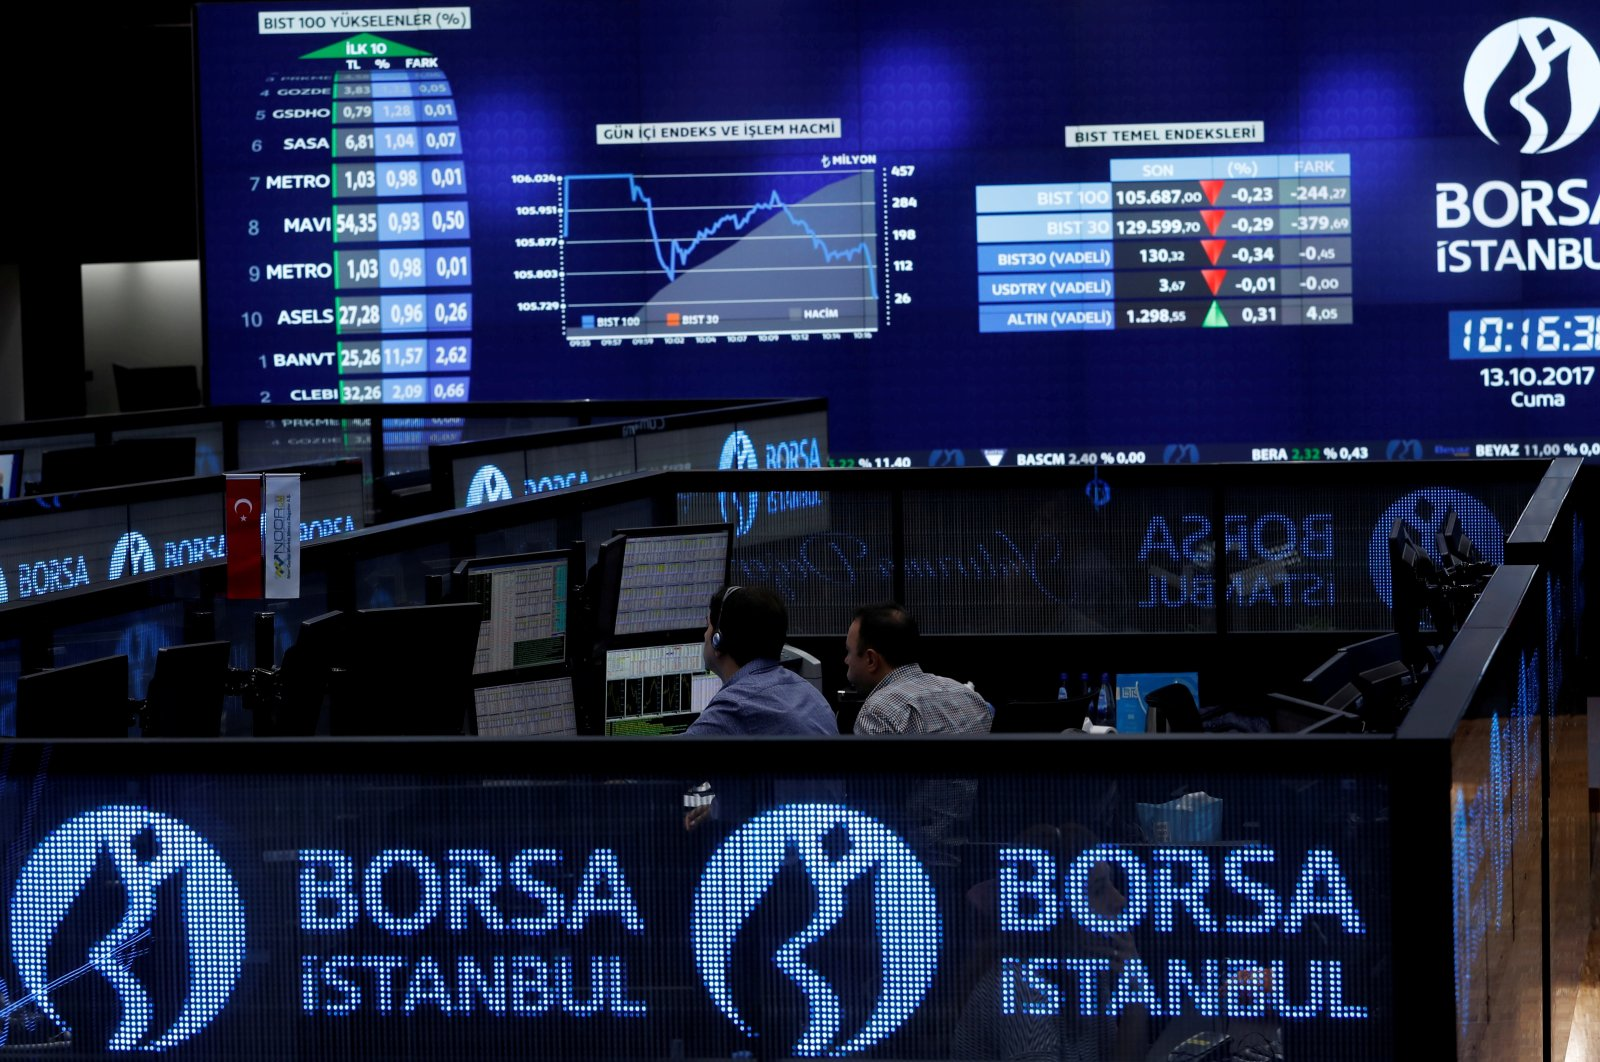 Traders work at their desks on the floor of the Borsa Istanbul, in Istanbul, Turkey, Oct. 13, 2017. (Reuters Photo)